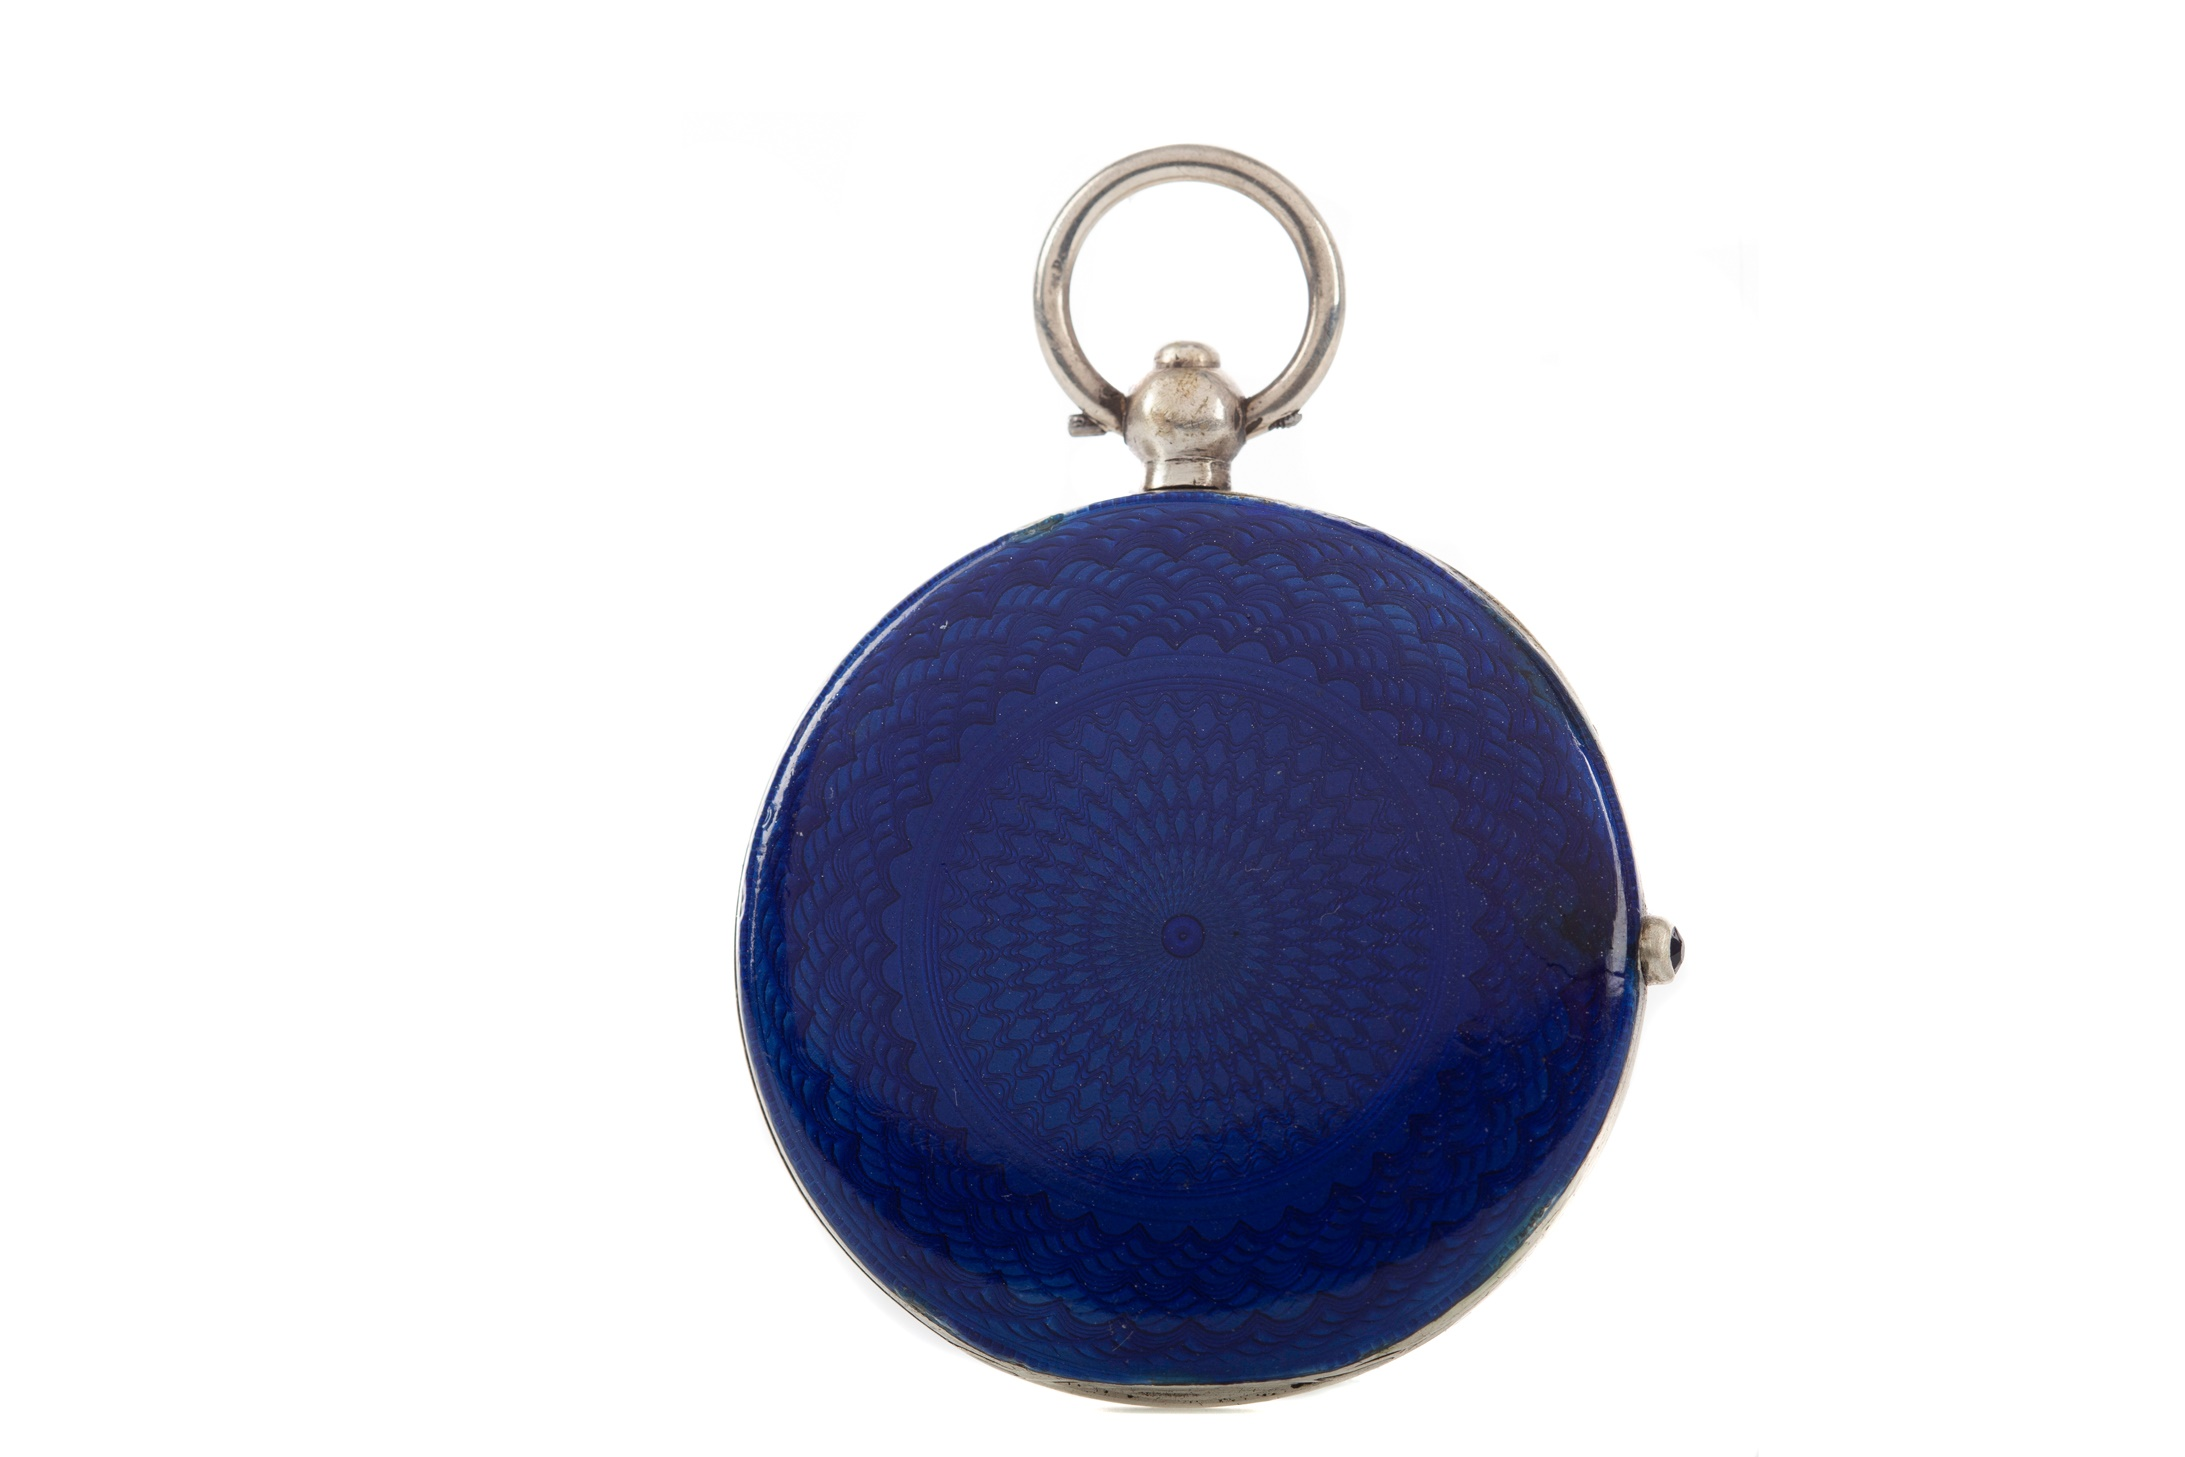 AN EDWARDIAN SILVER AND GUILLOCHE ENAMEL COMPACT